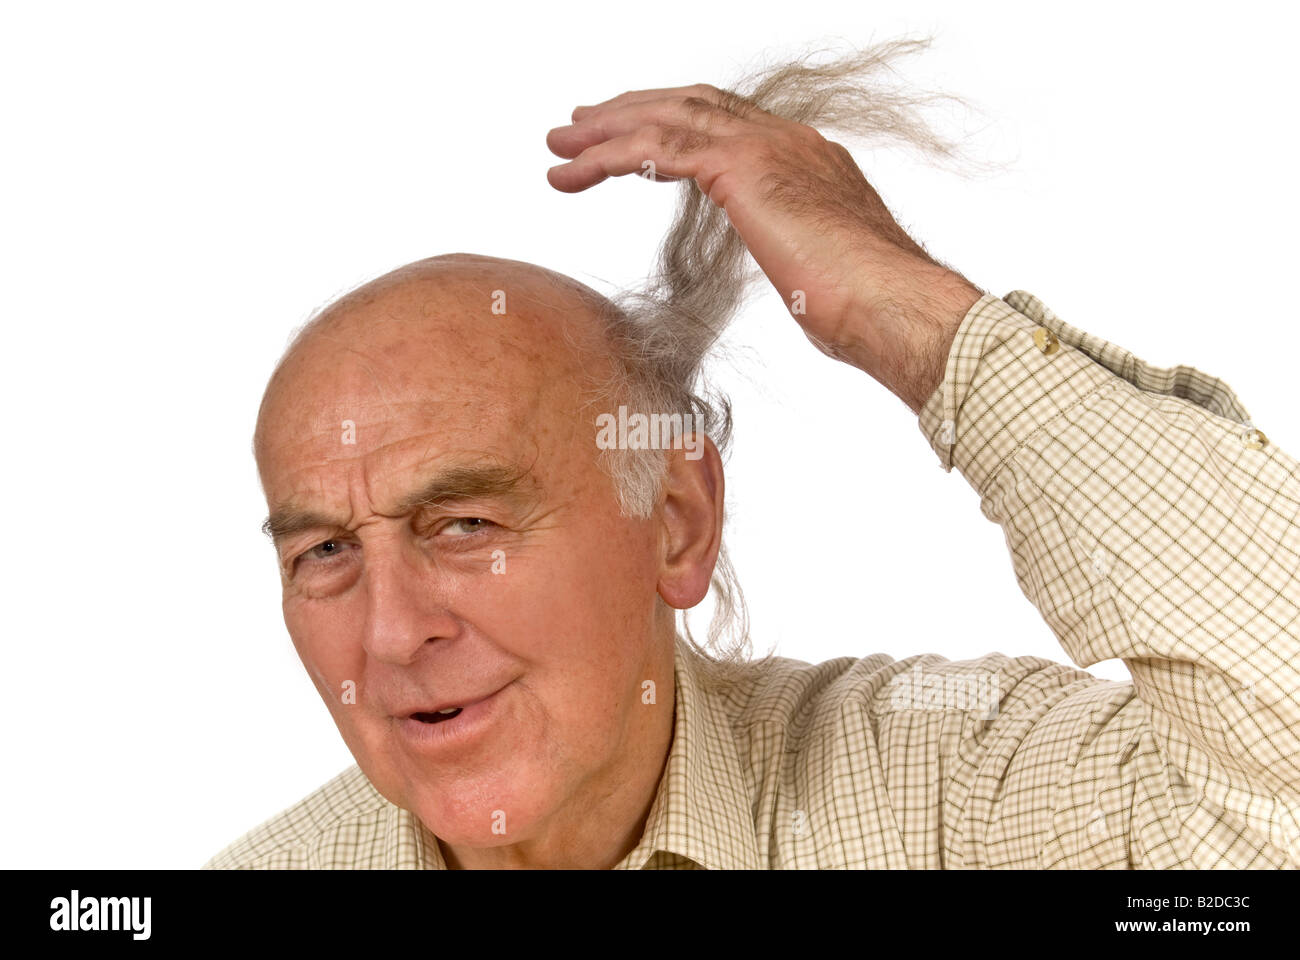 Magnificent Horizontal Close Up Portrait Of An Elderly Gentleman Supporting A Short Hairstyles For Black Women Fulllsitofus